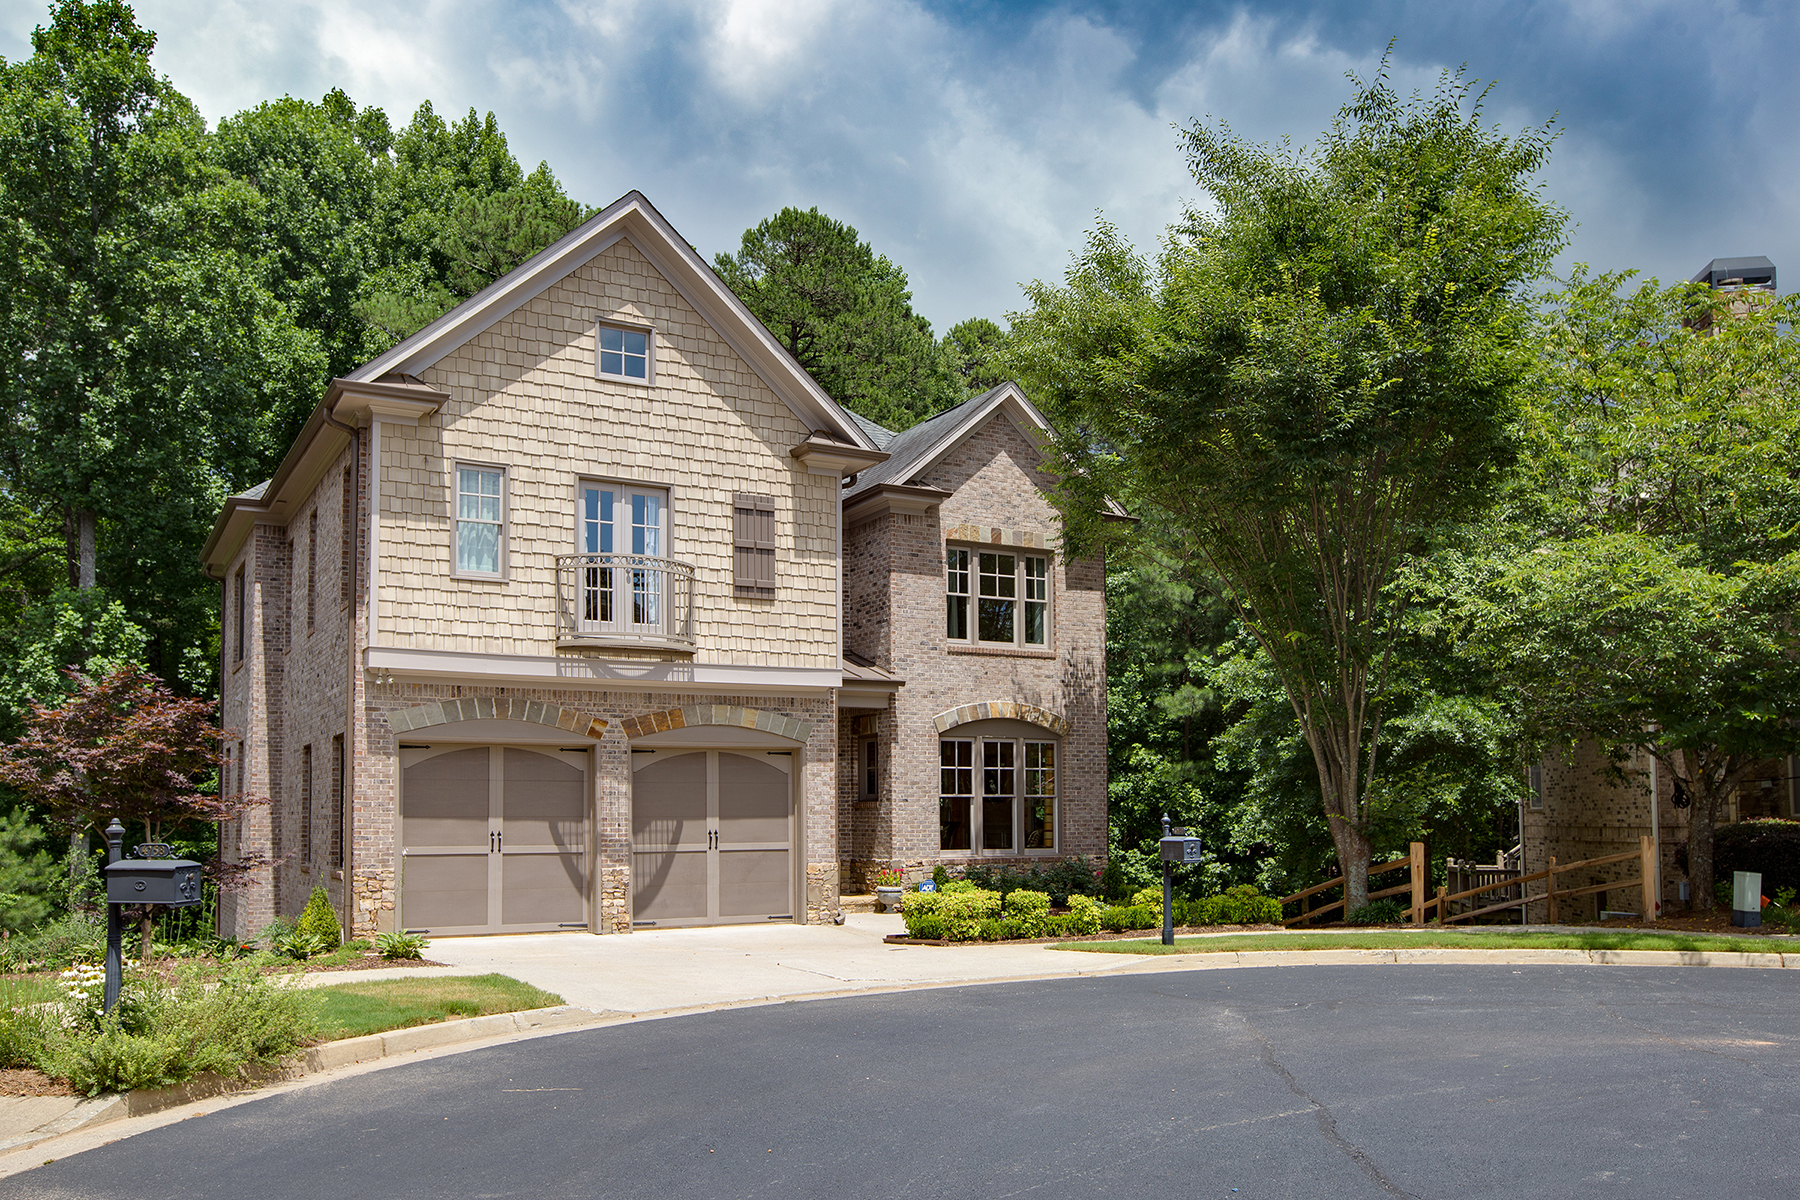 Single Family Home for Sale at Authentic Parkside Living 4762 Lakeway Place Alpharetta, Georgia 30005 United States